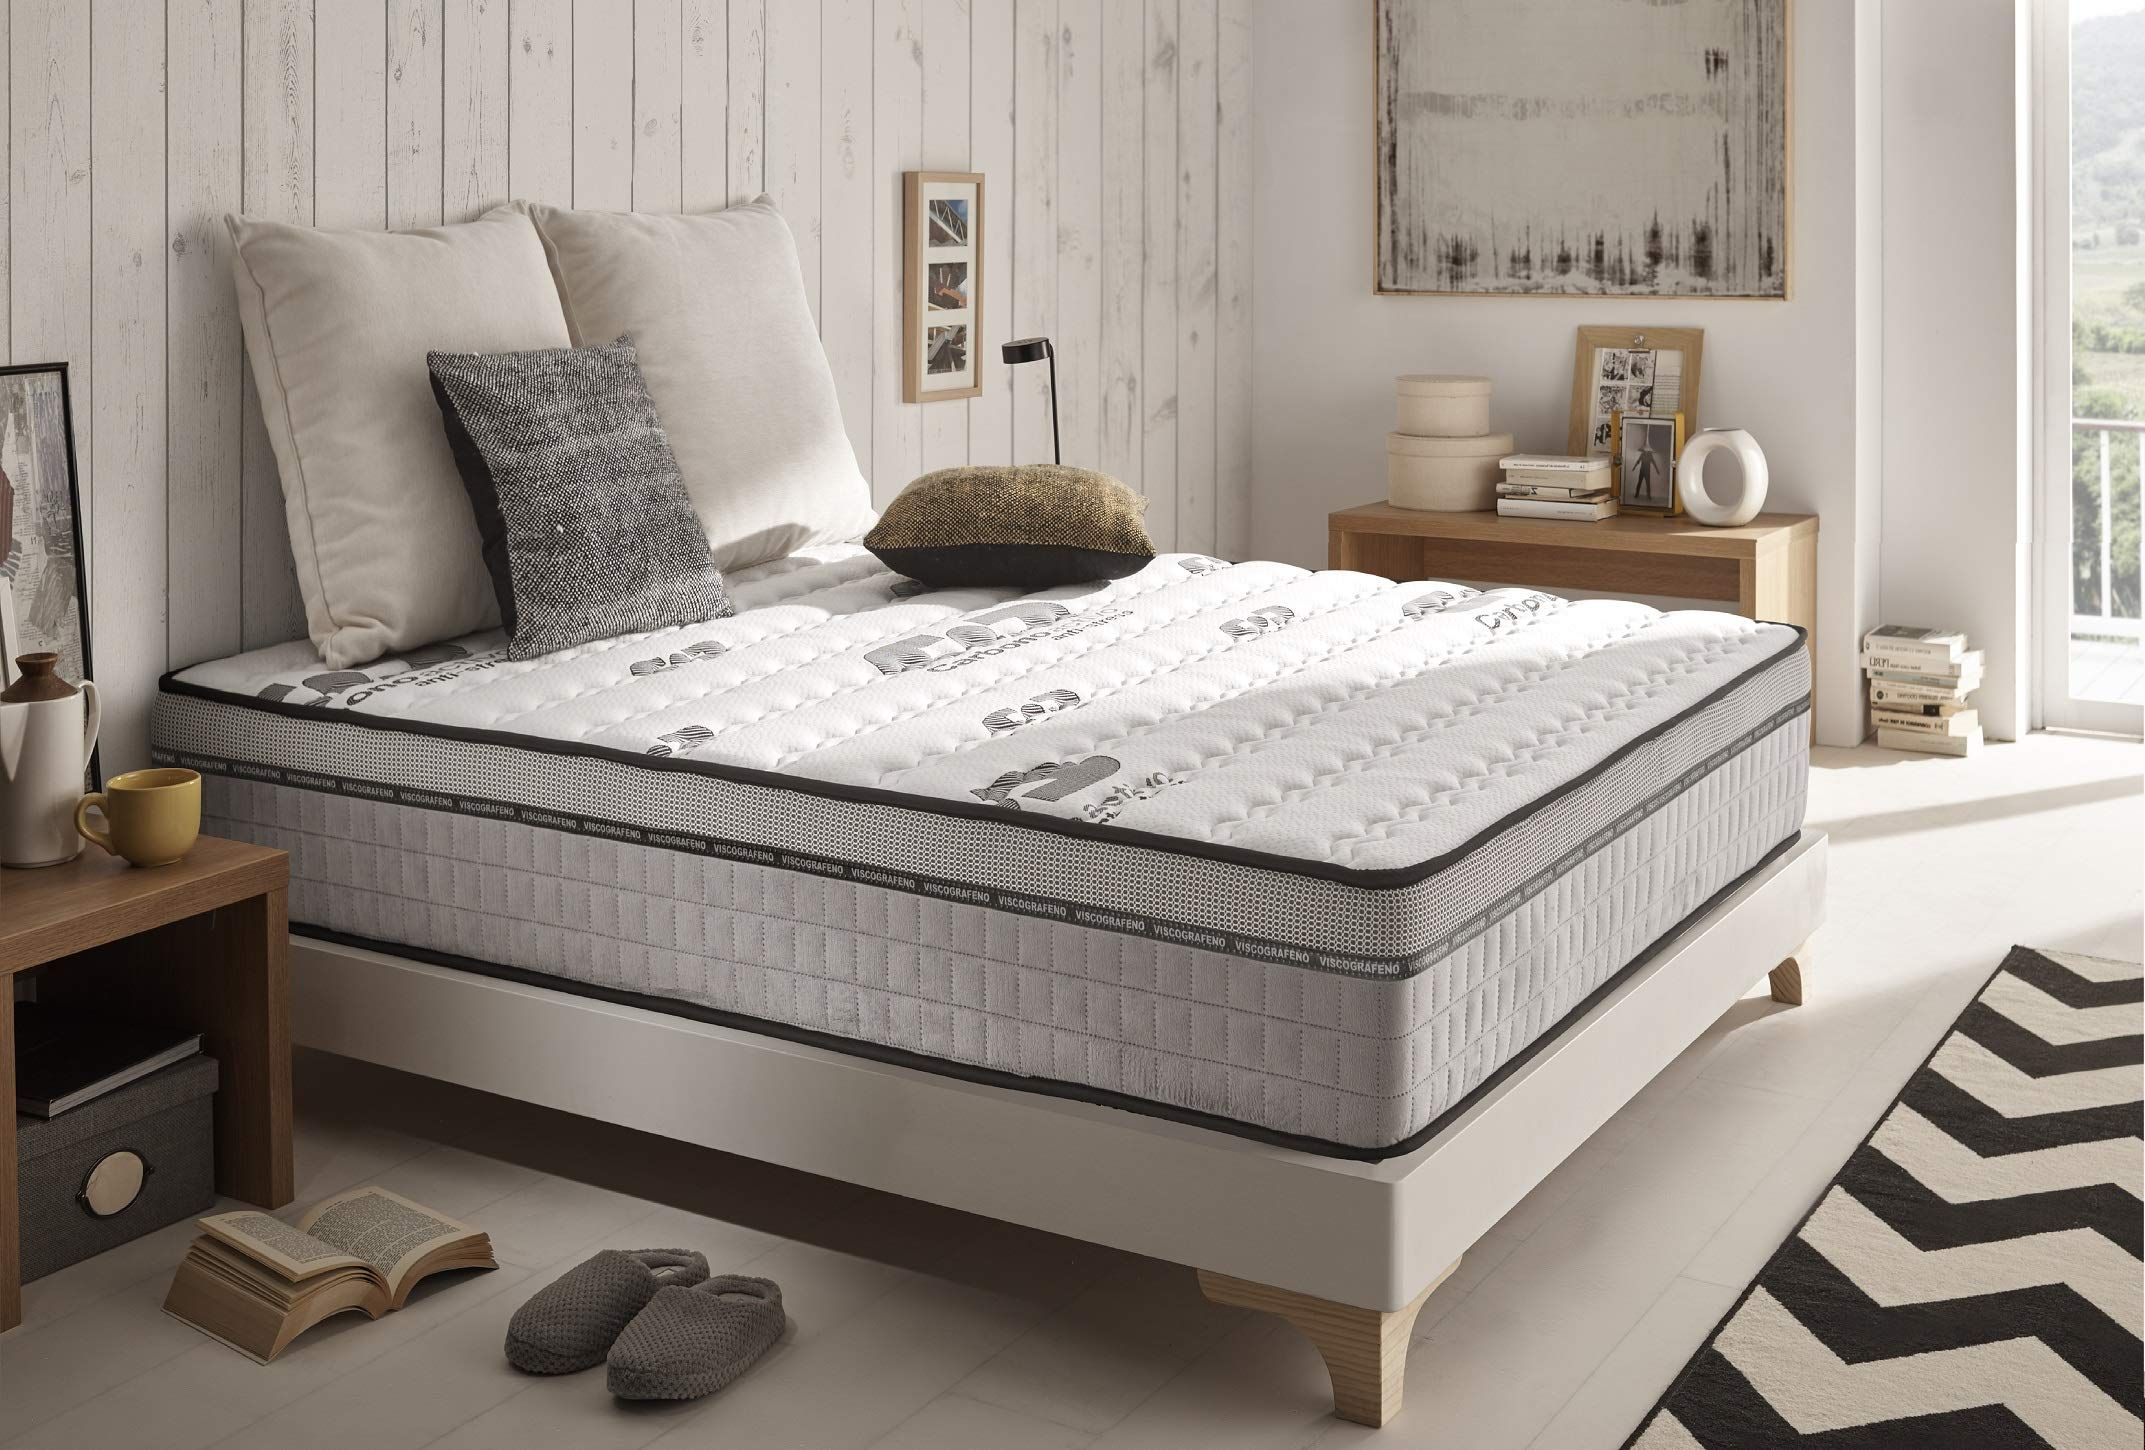 Naturalex Visco Carbone Materasso Matrimoniale 160x190 Cm Memory E Lattice Multistrato 24 Cm Visoelastico Semirigido In 2020 Mattress Furniture Home Decor